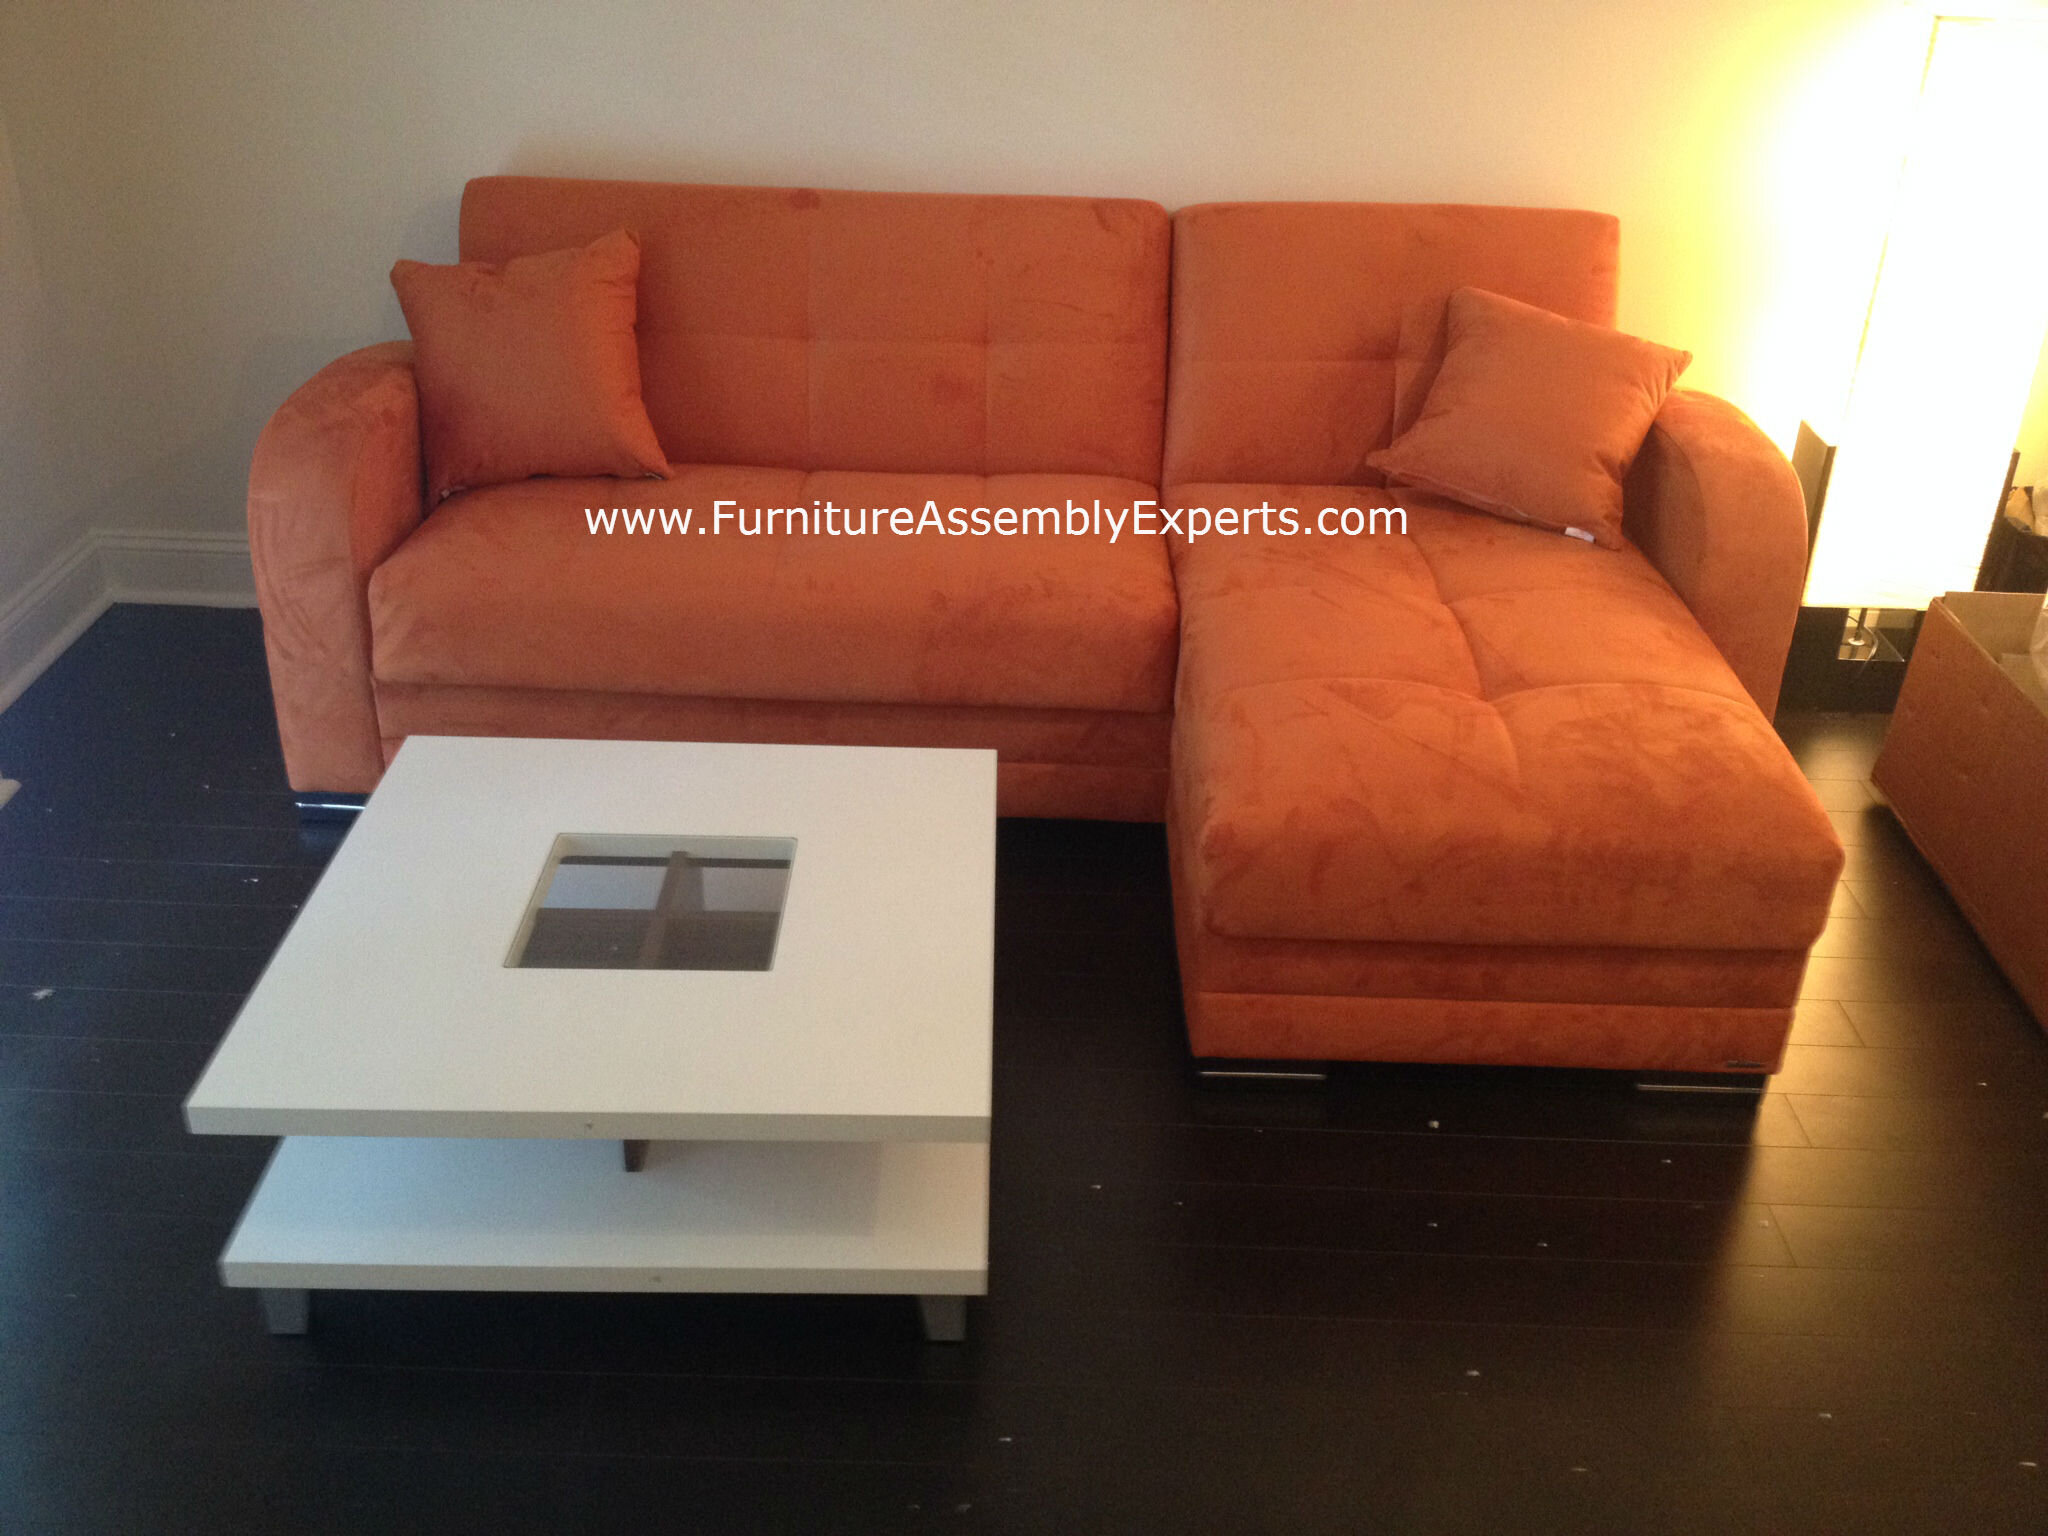 check out this hillsdale sofa and coffee table installed for a customer at his home in Washington DC by our Furniture assembly Experts